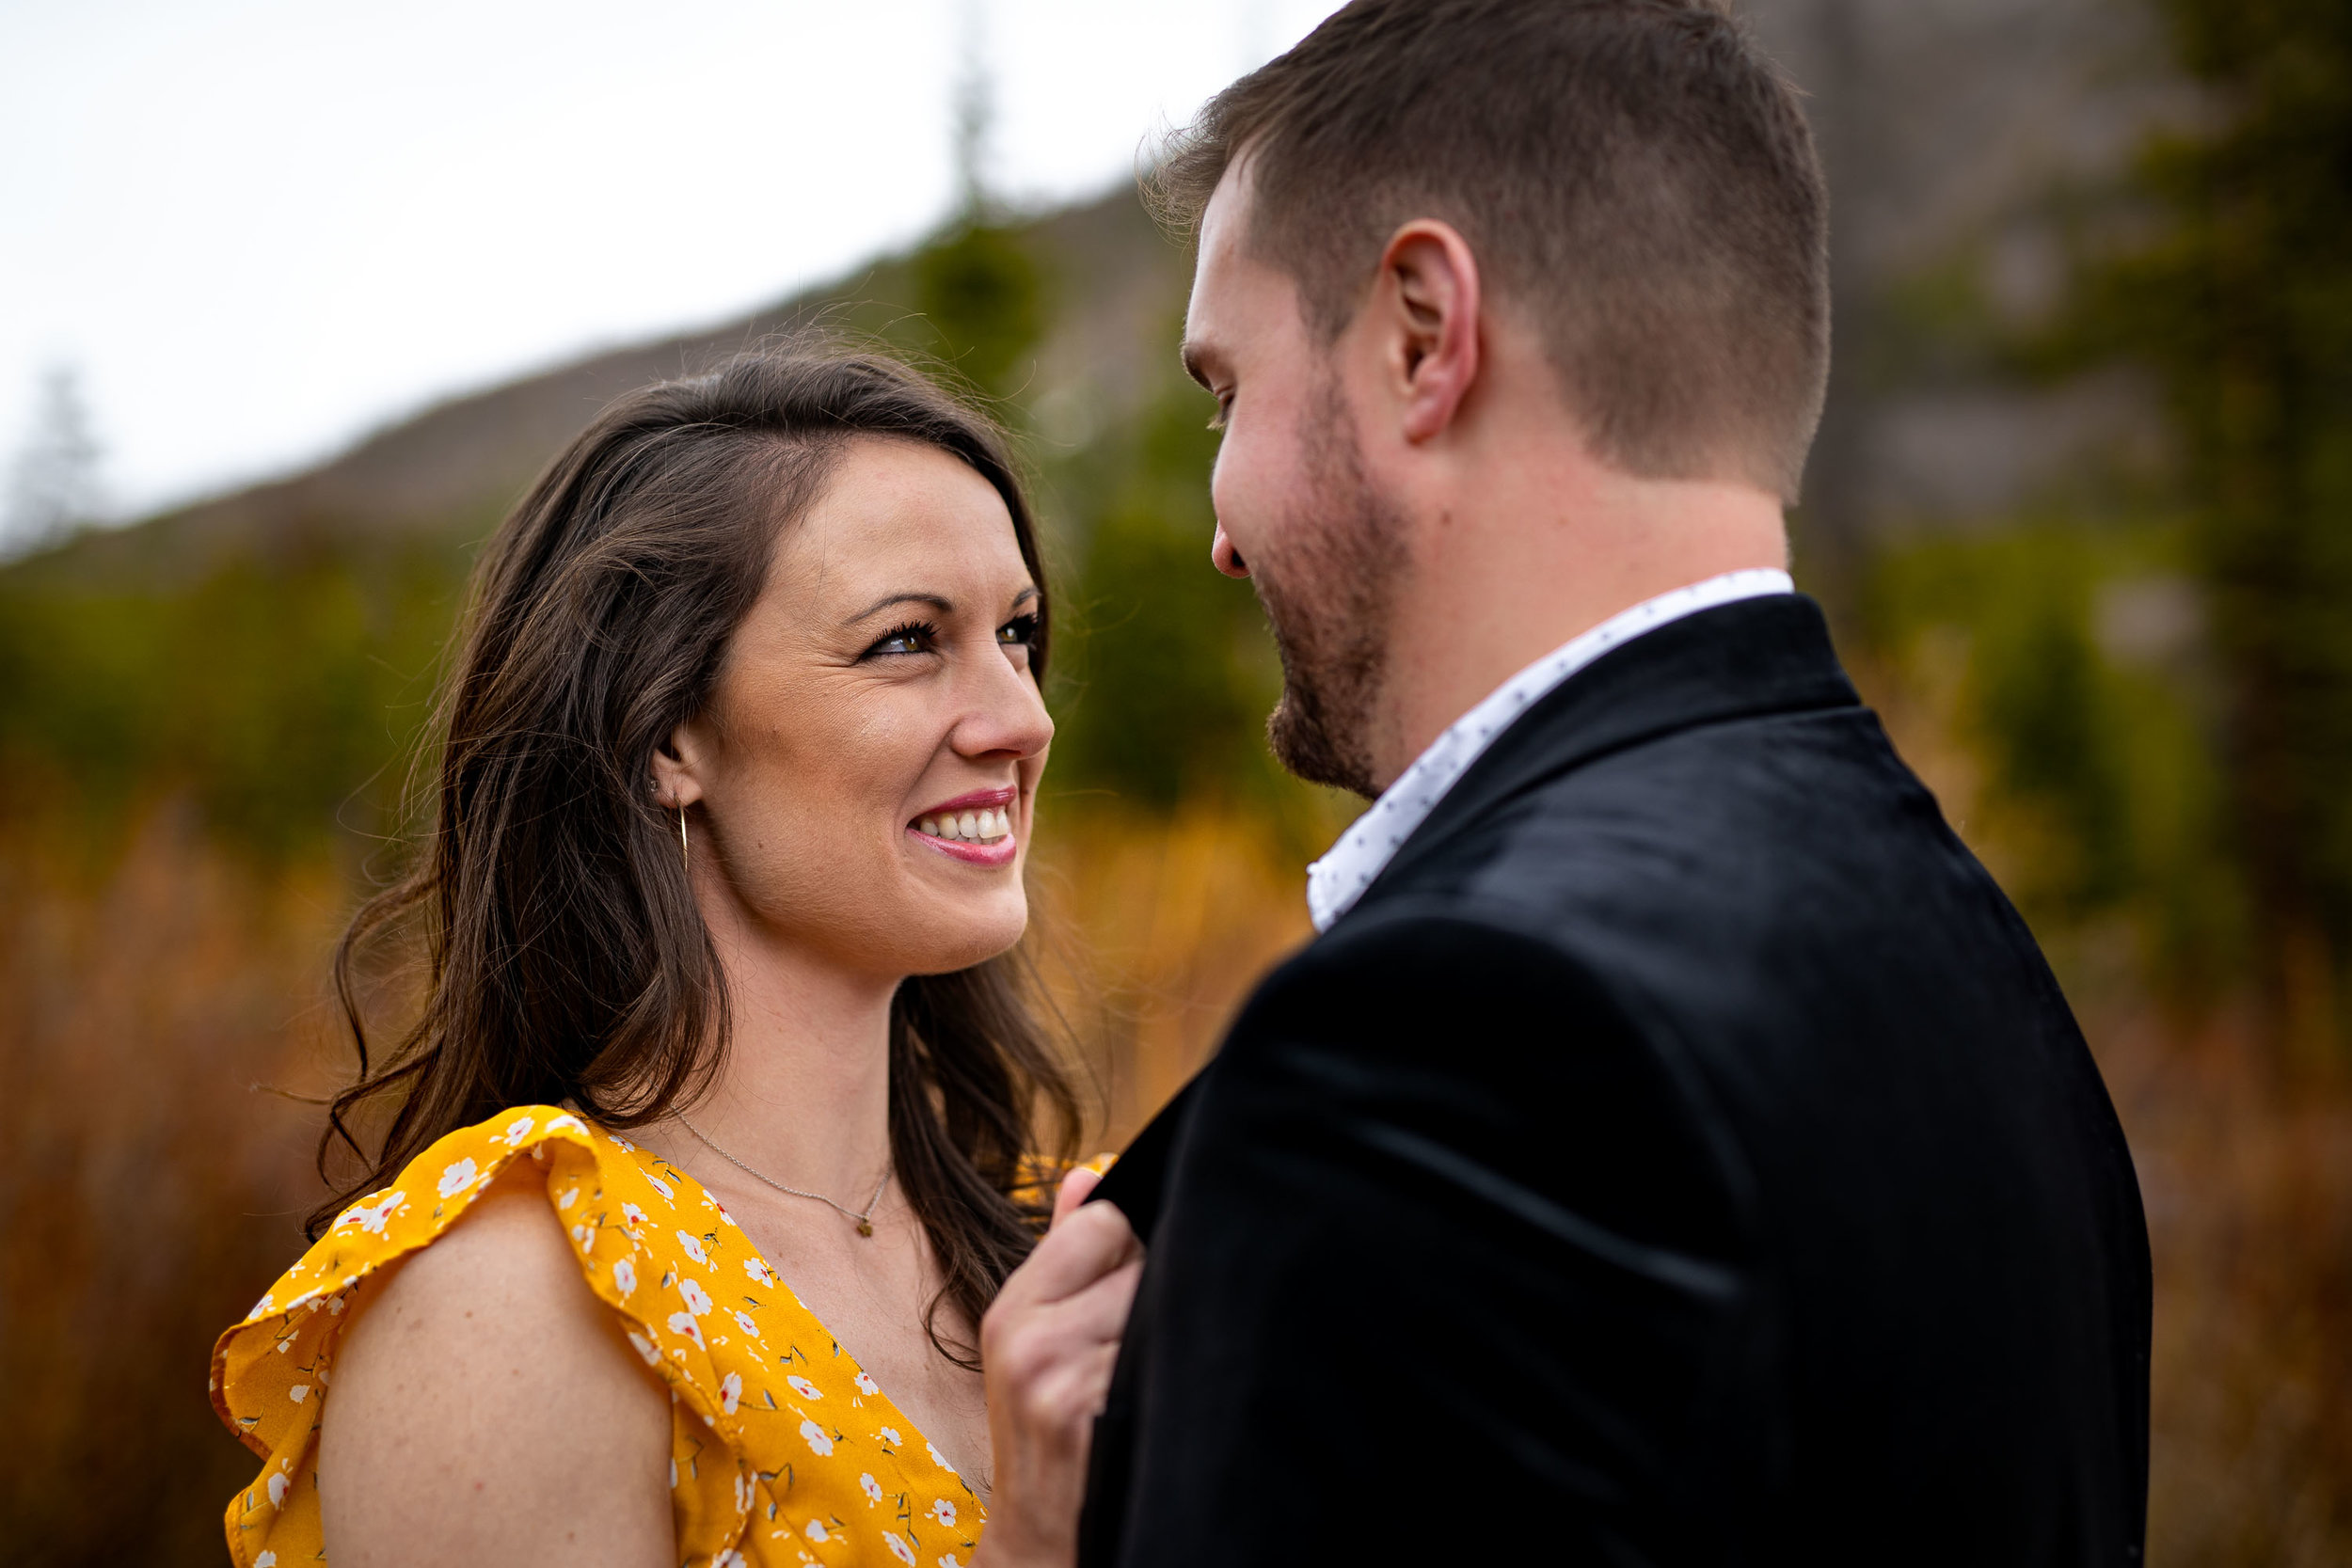 Colorado_Ghost_Town_Engagement_Session-3.jpg